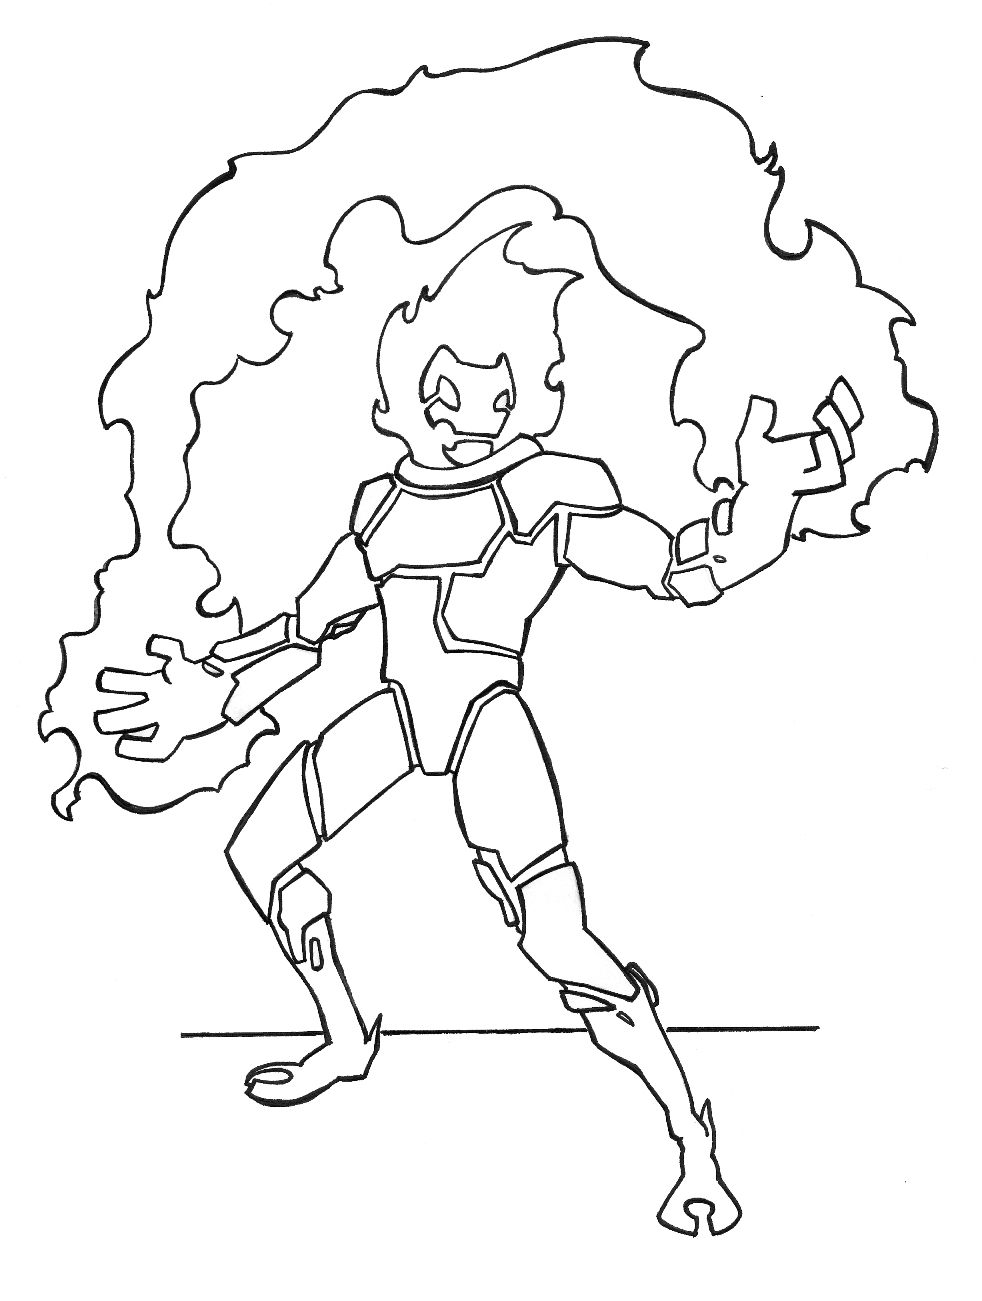 Heat blast coloring pages ~ Pyronite Lineart by DaniloHokama on DeviantArt